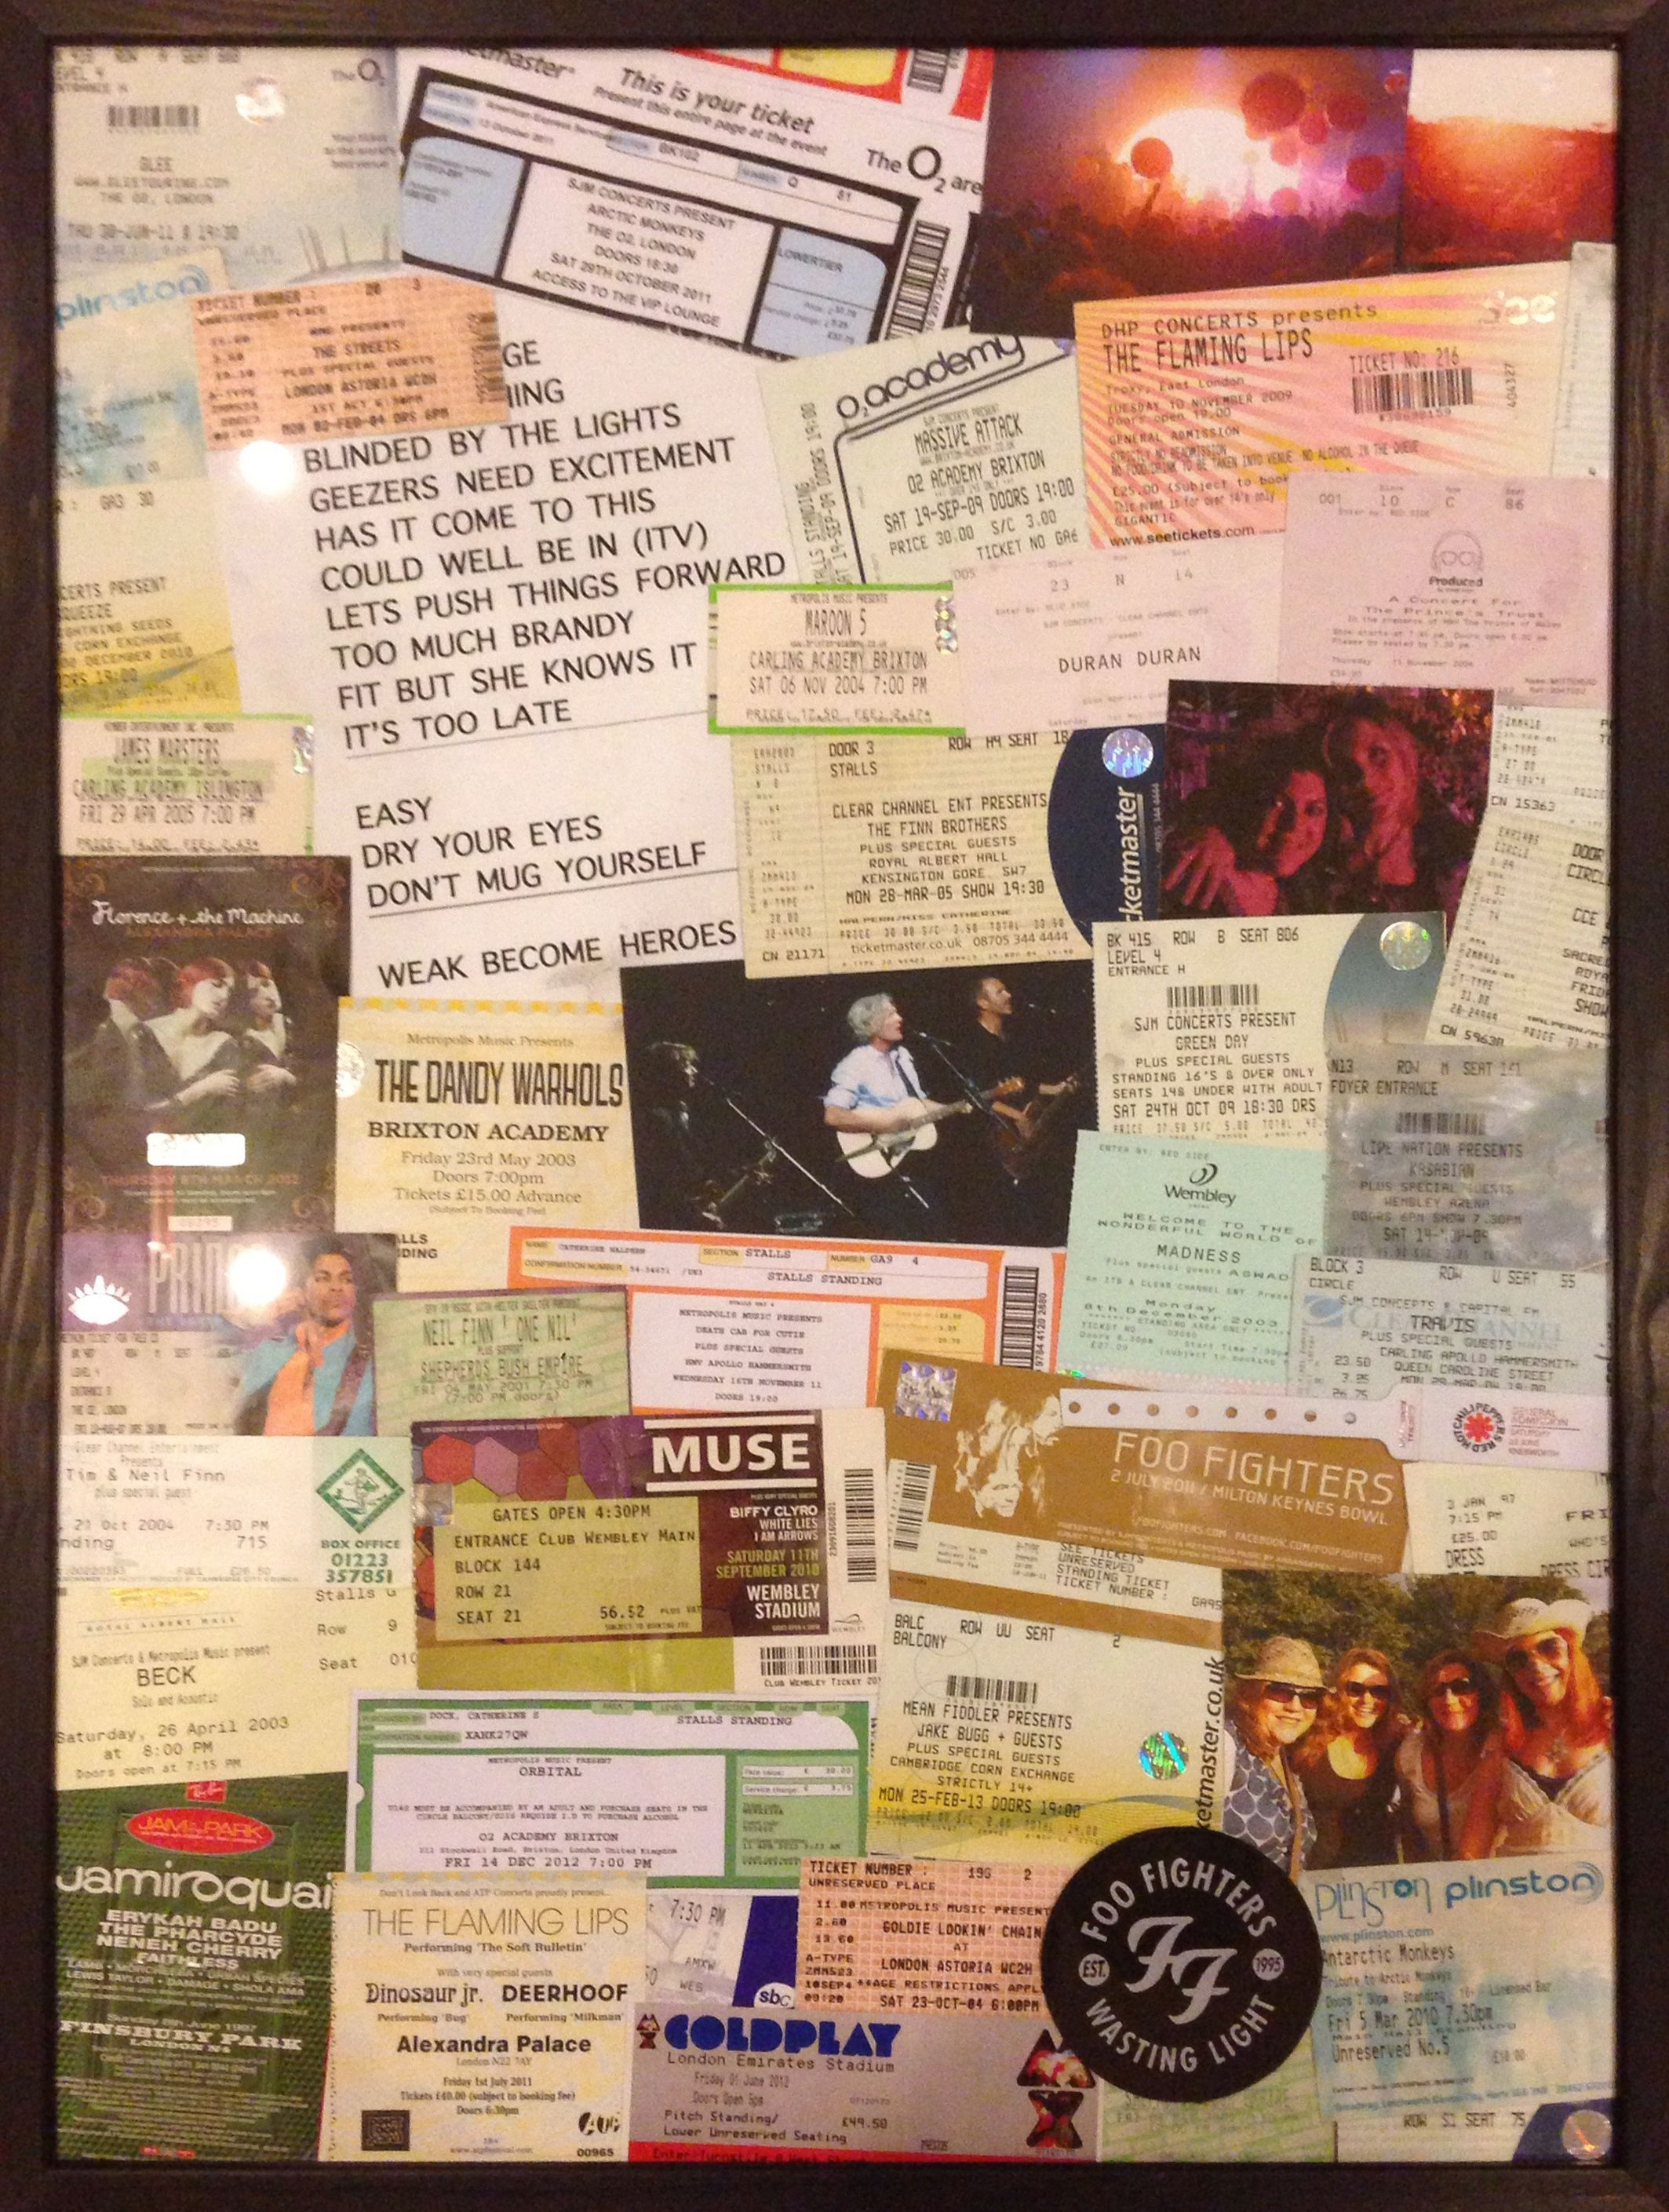 This is part one of a two-part project to display most of my concert tickets over 25 years of going to gigs (I started reasonably young ;)). I love that I'm the only person in the world who been to these exact gigs - it's the story of my adolescent and adult life.